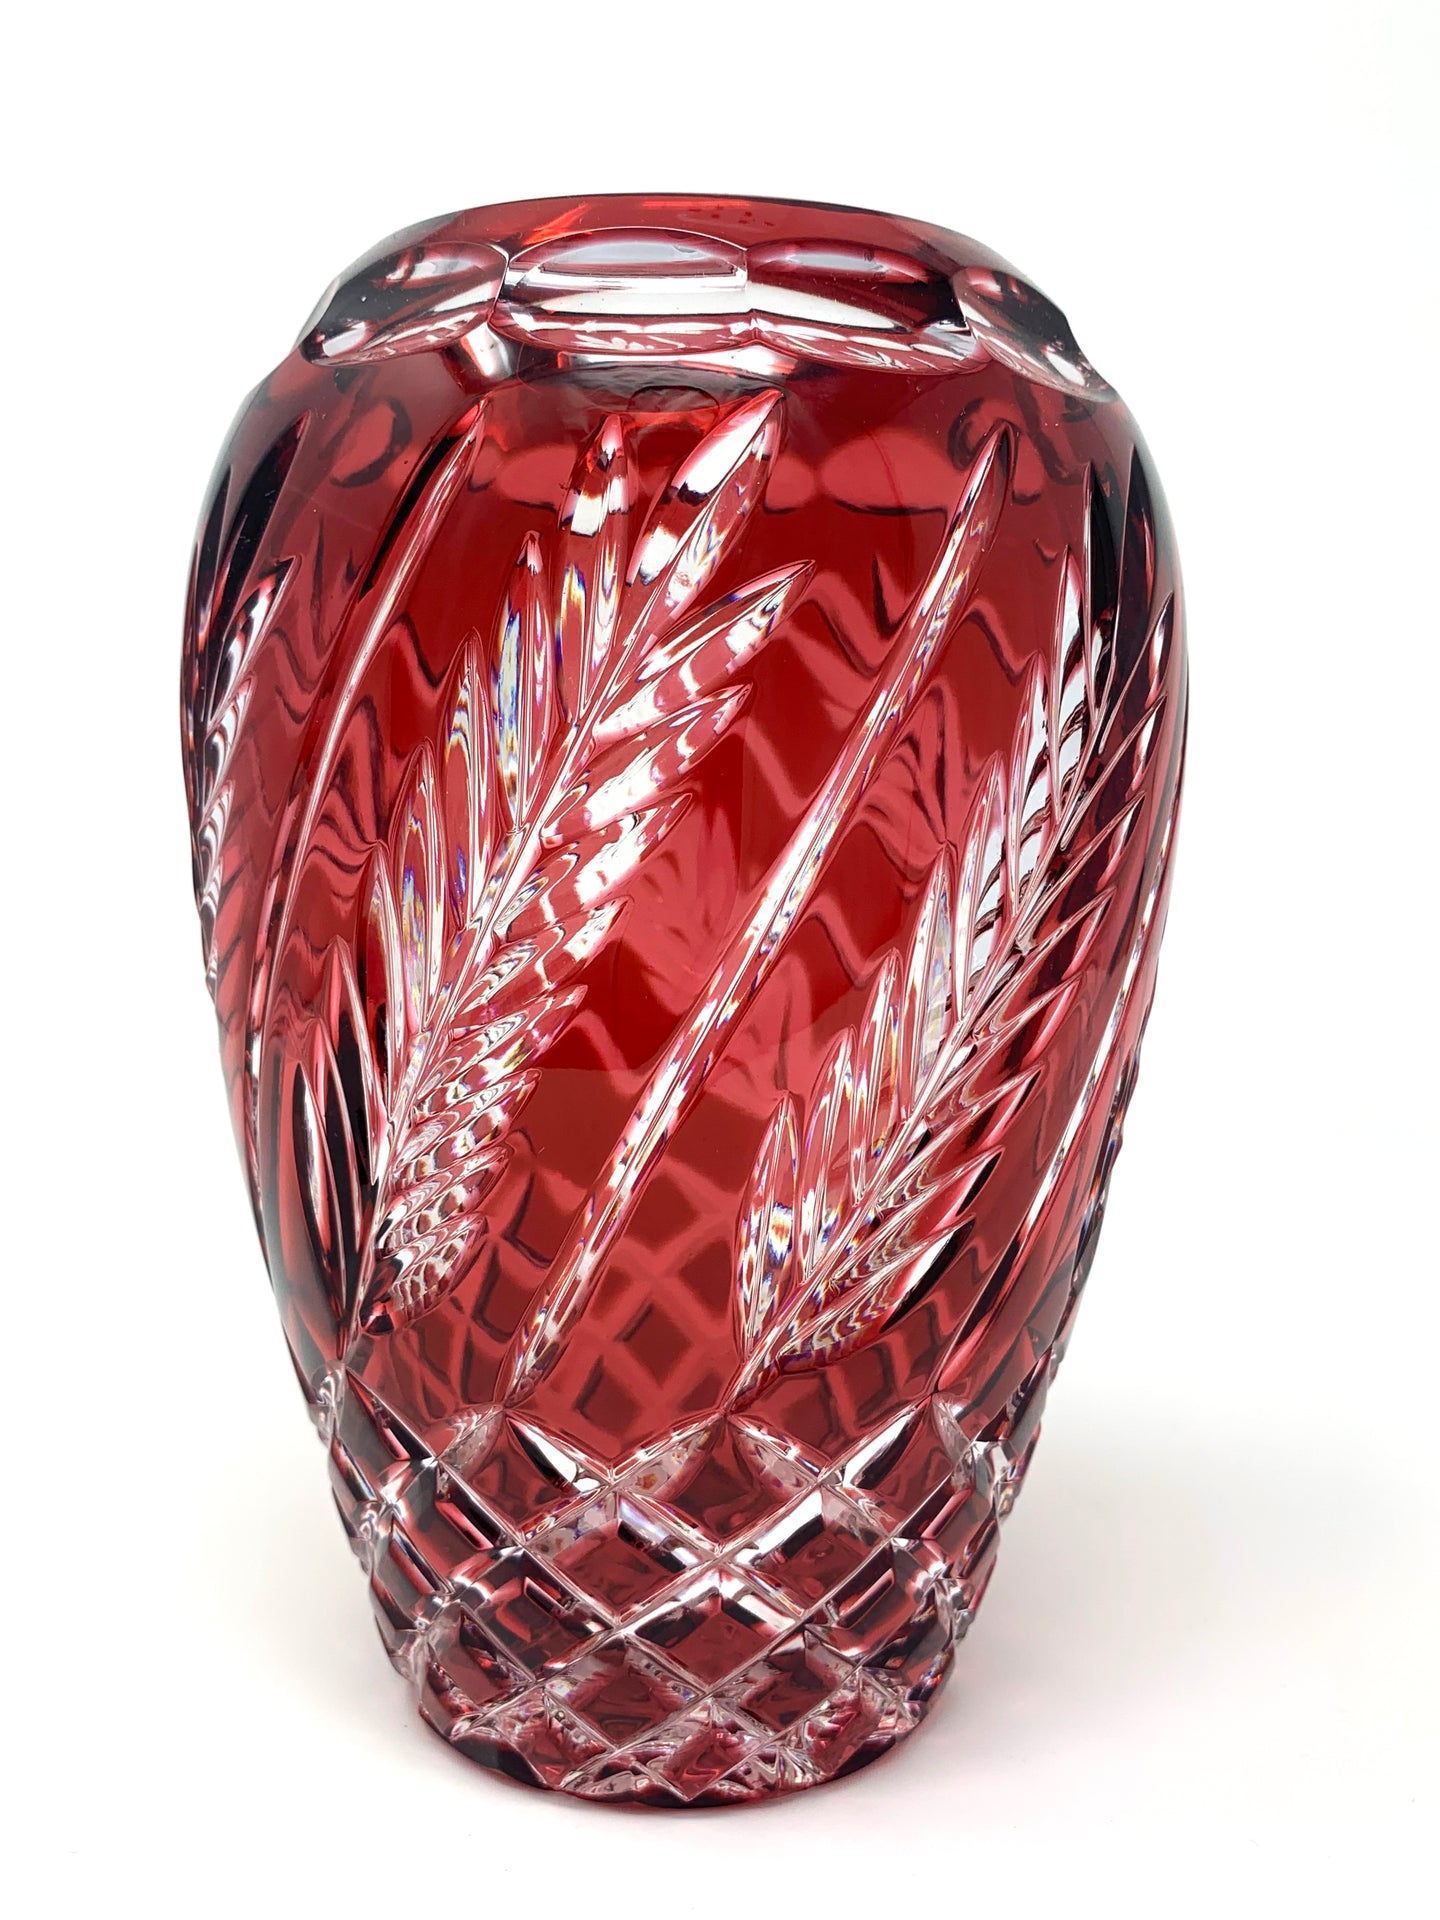 Red Wheat Pear-shaped Vase